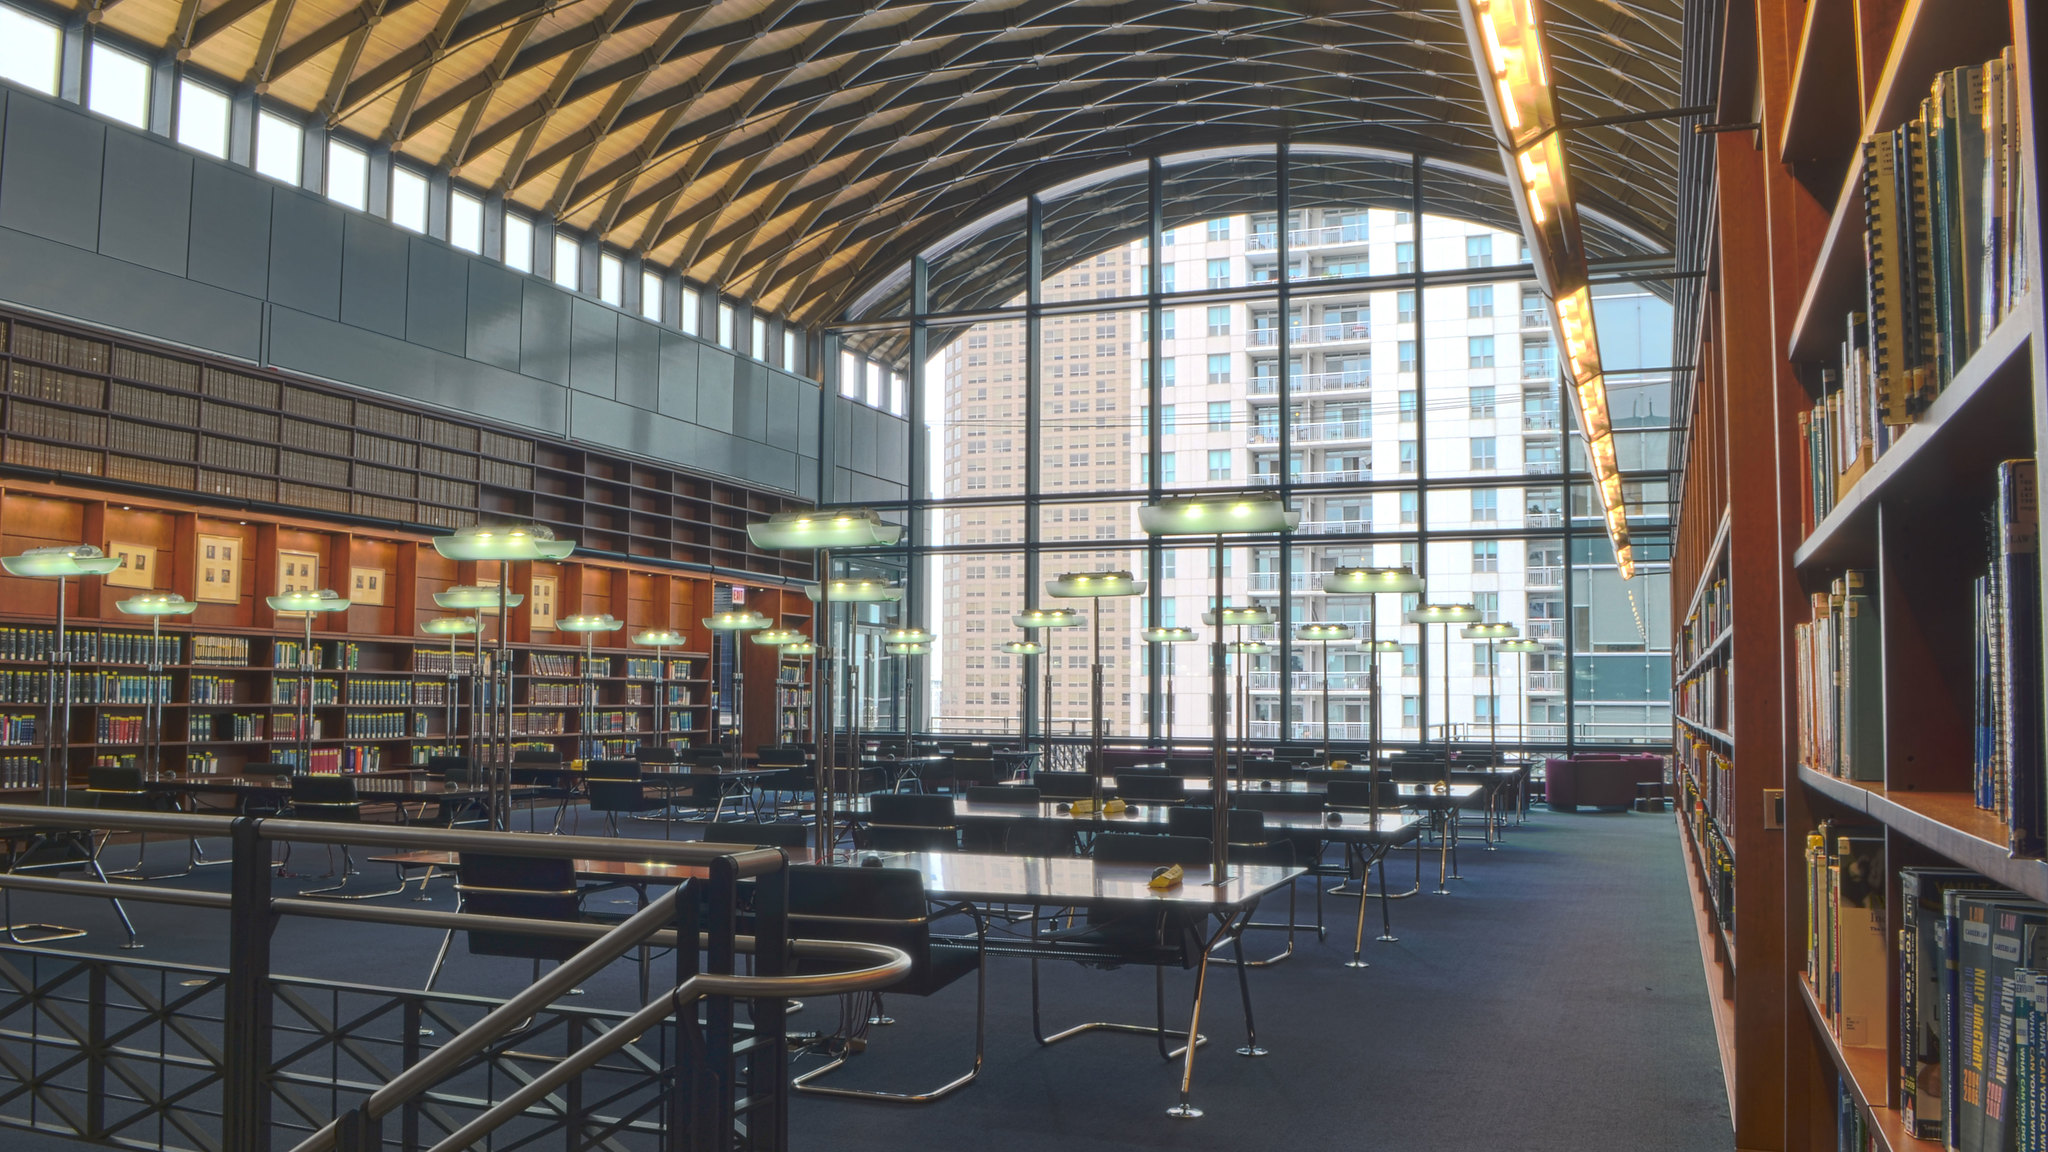 Chicago Association of Law Libraries's favorites | Flickr